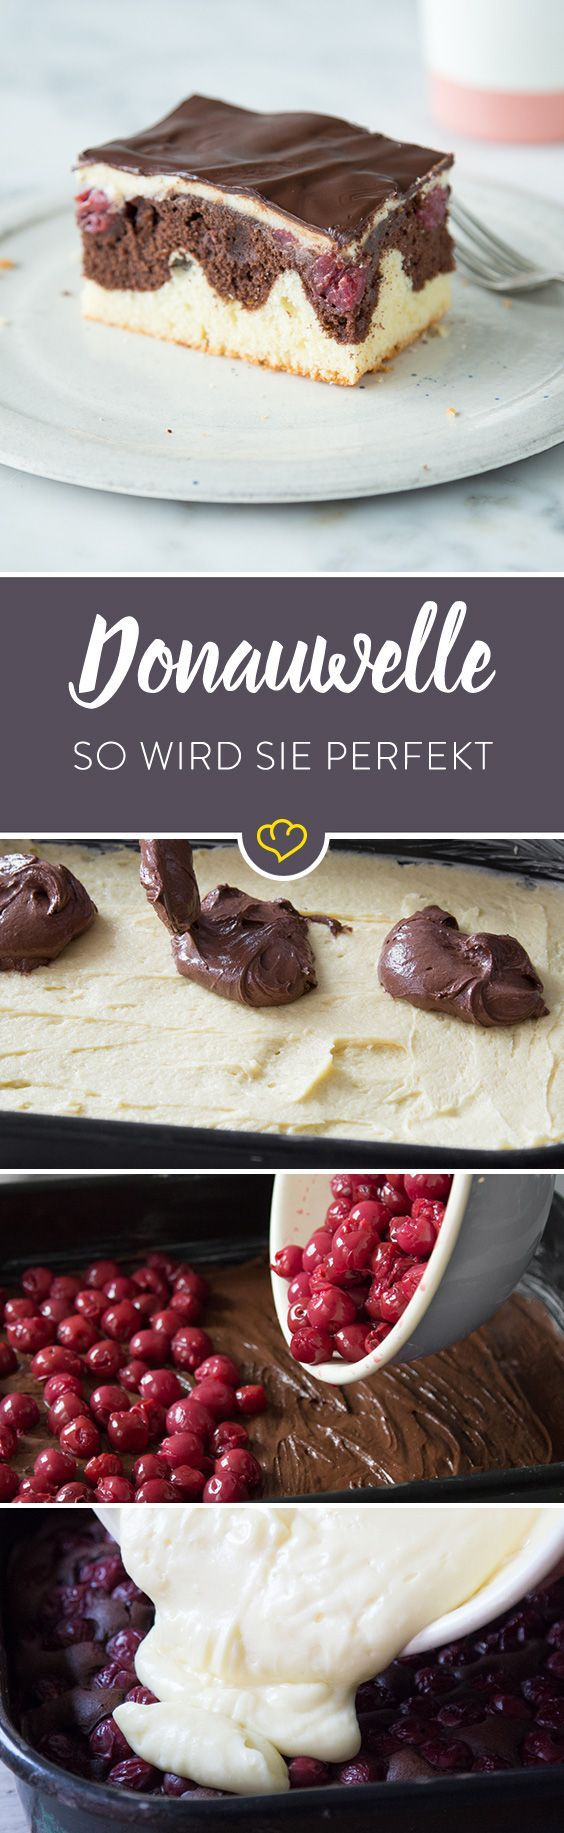 Donauwelle blech mit pudding recipes